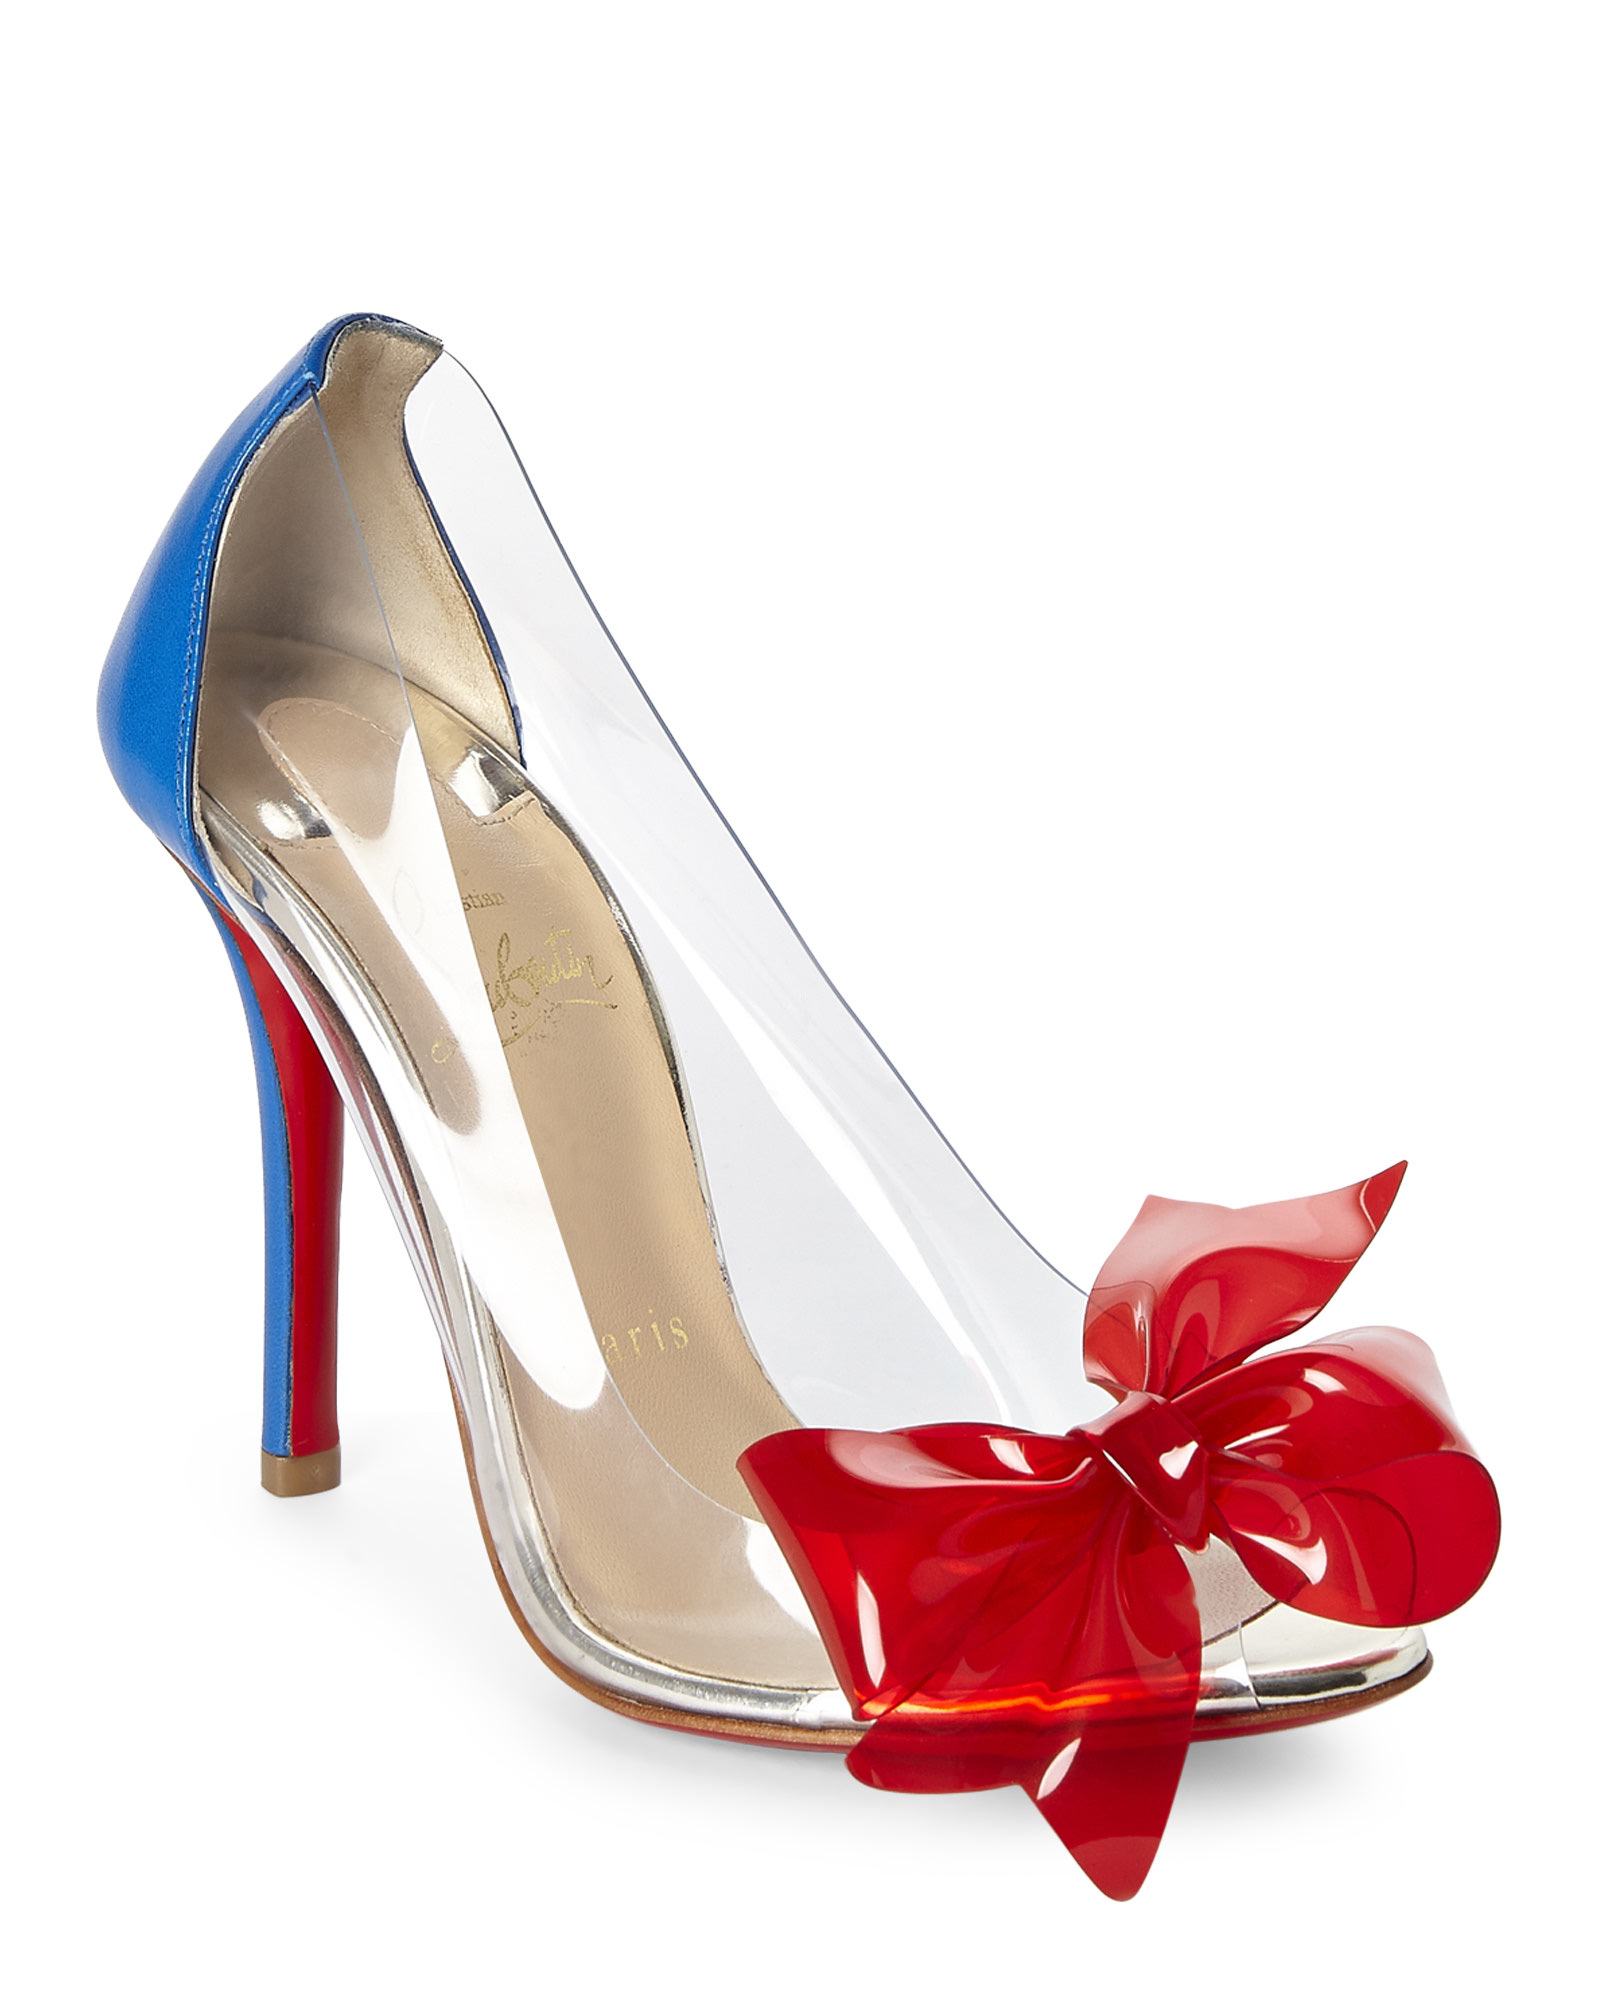 Christian Louboutin PVC Wedge Booties cheap websites pictures for sale 2014 unisex shopping online cheap online buy cheap 2015 3PlfV